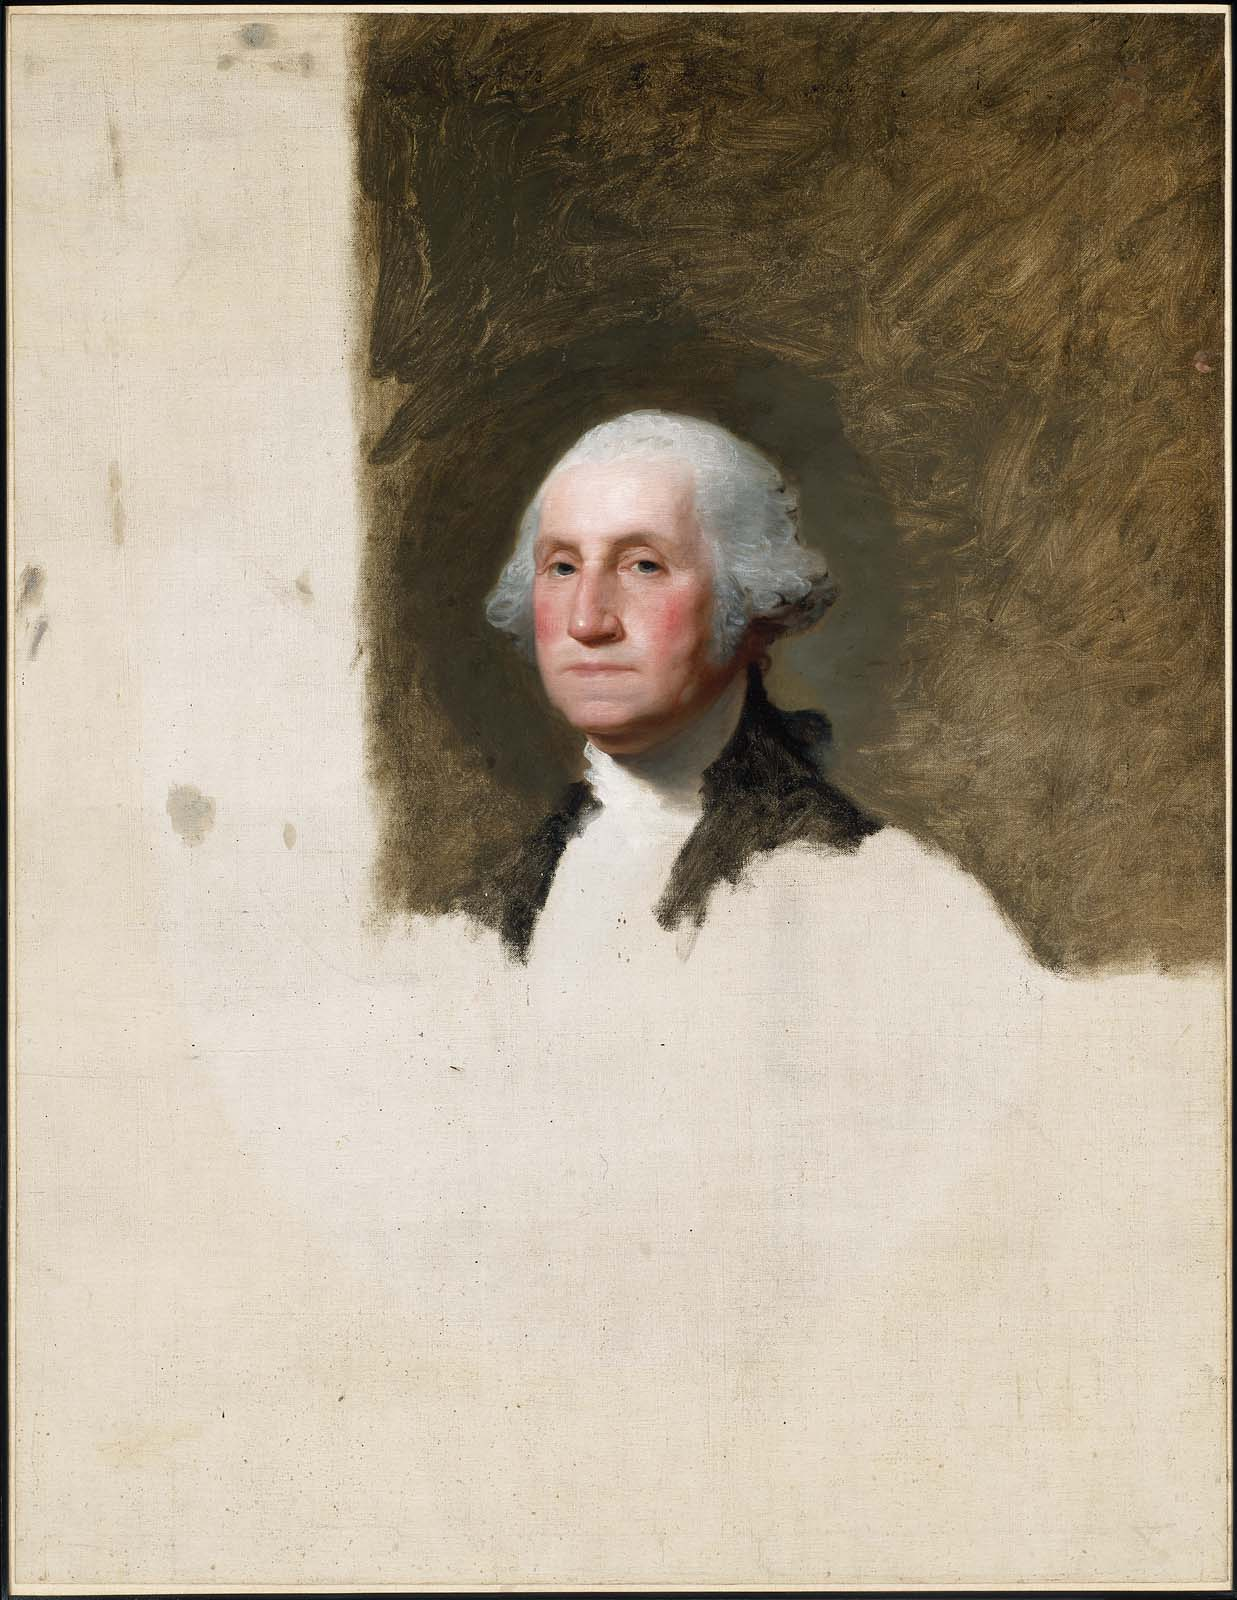 Unfinished portrait of George Washington, by Gilbert Stuart, Museum of Fine Arts of Boston.   Washington left an unfinished experiment in democratic government. Have we listened to his advice on how to keep it?